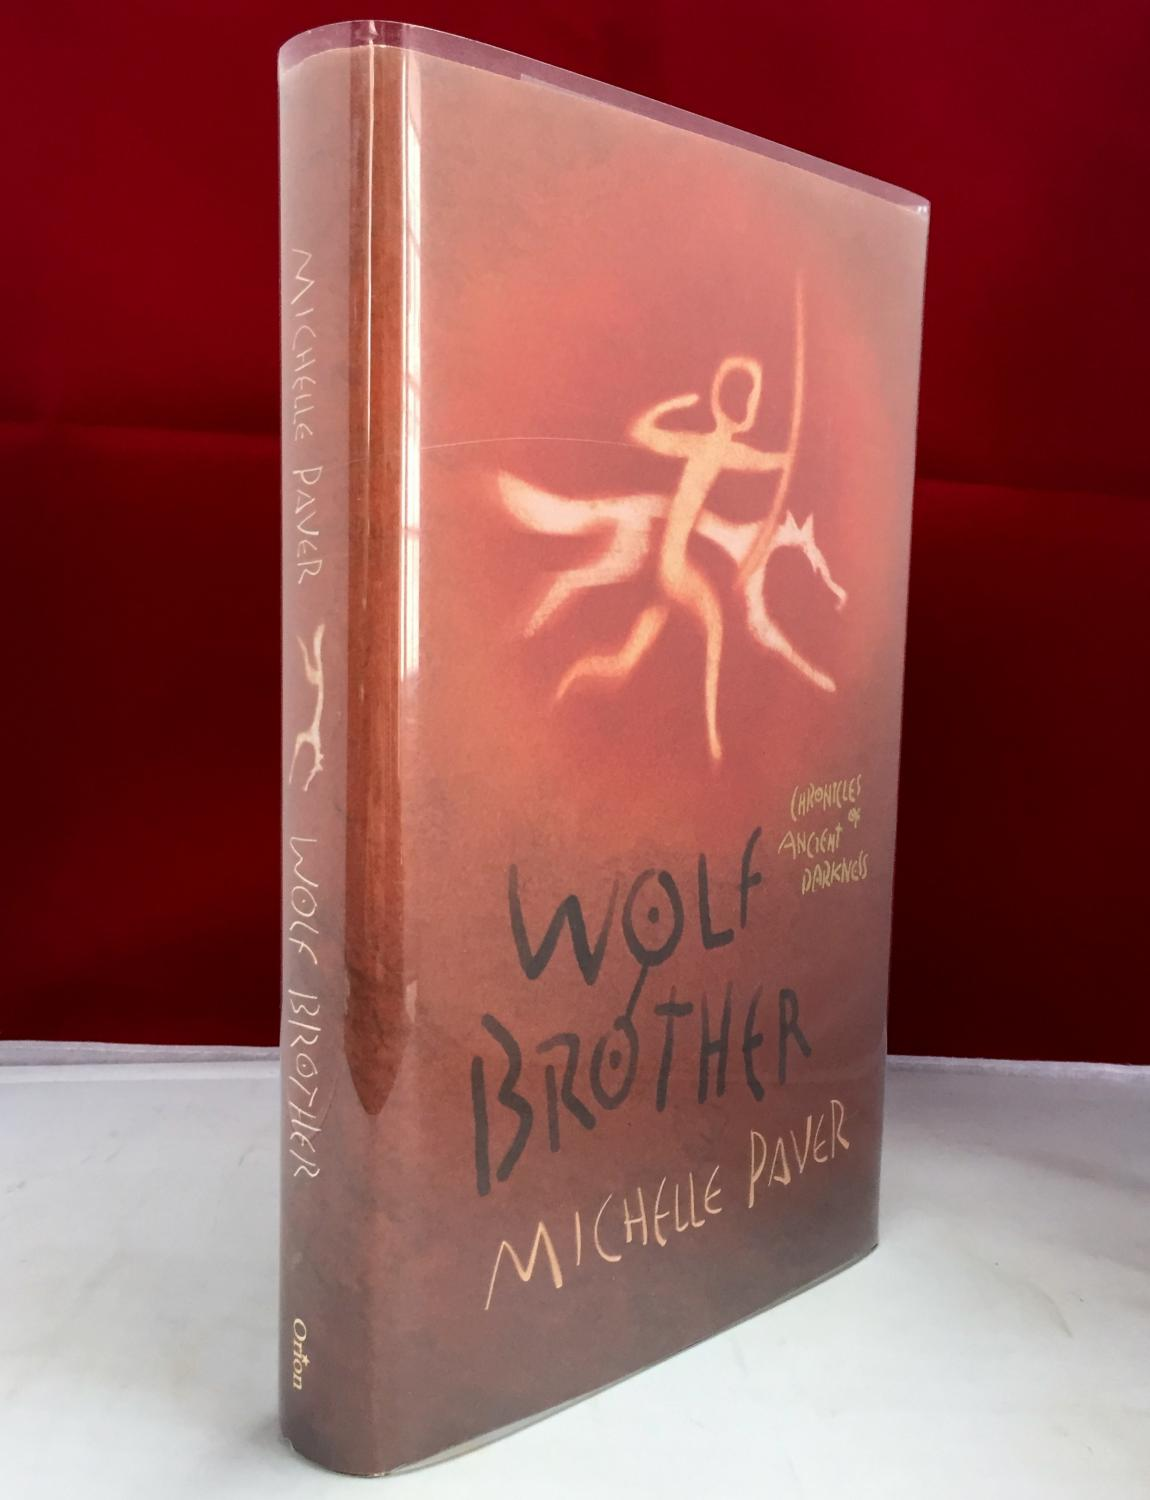 Wolf Brother ( with PAW PRINT ) Paver, Michelle